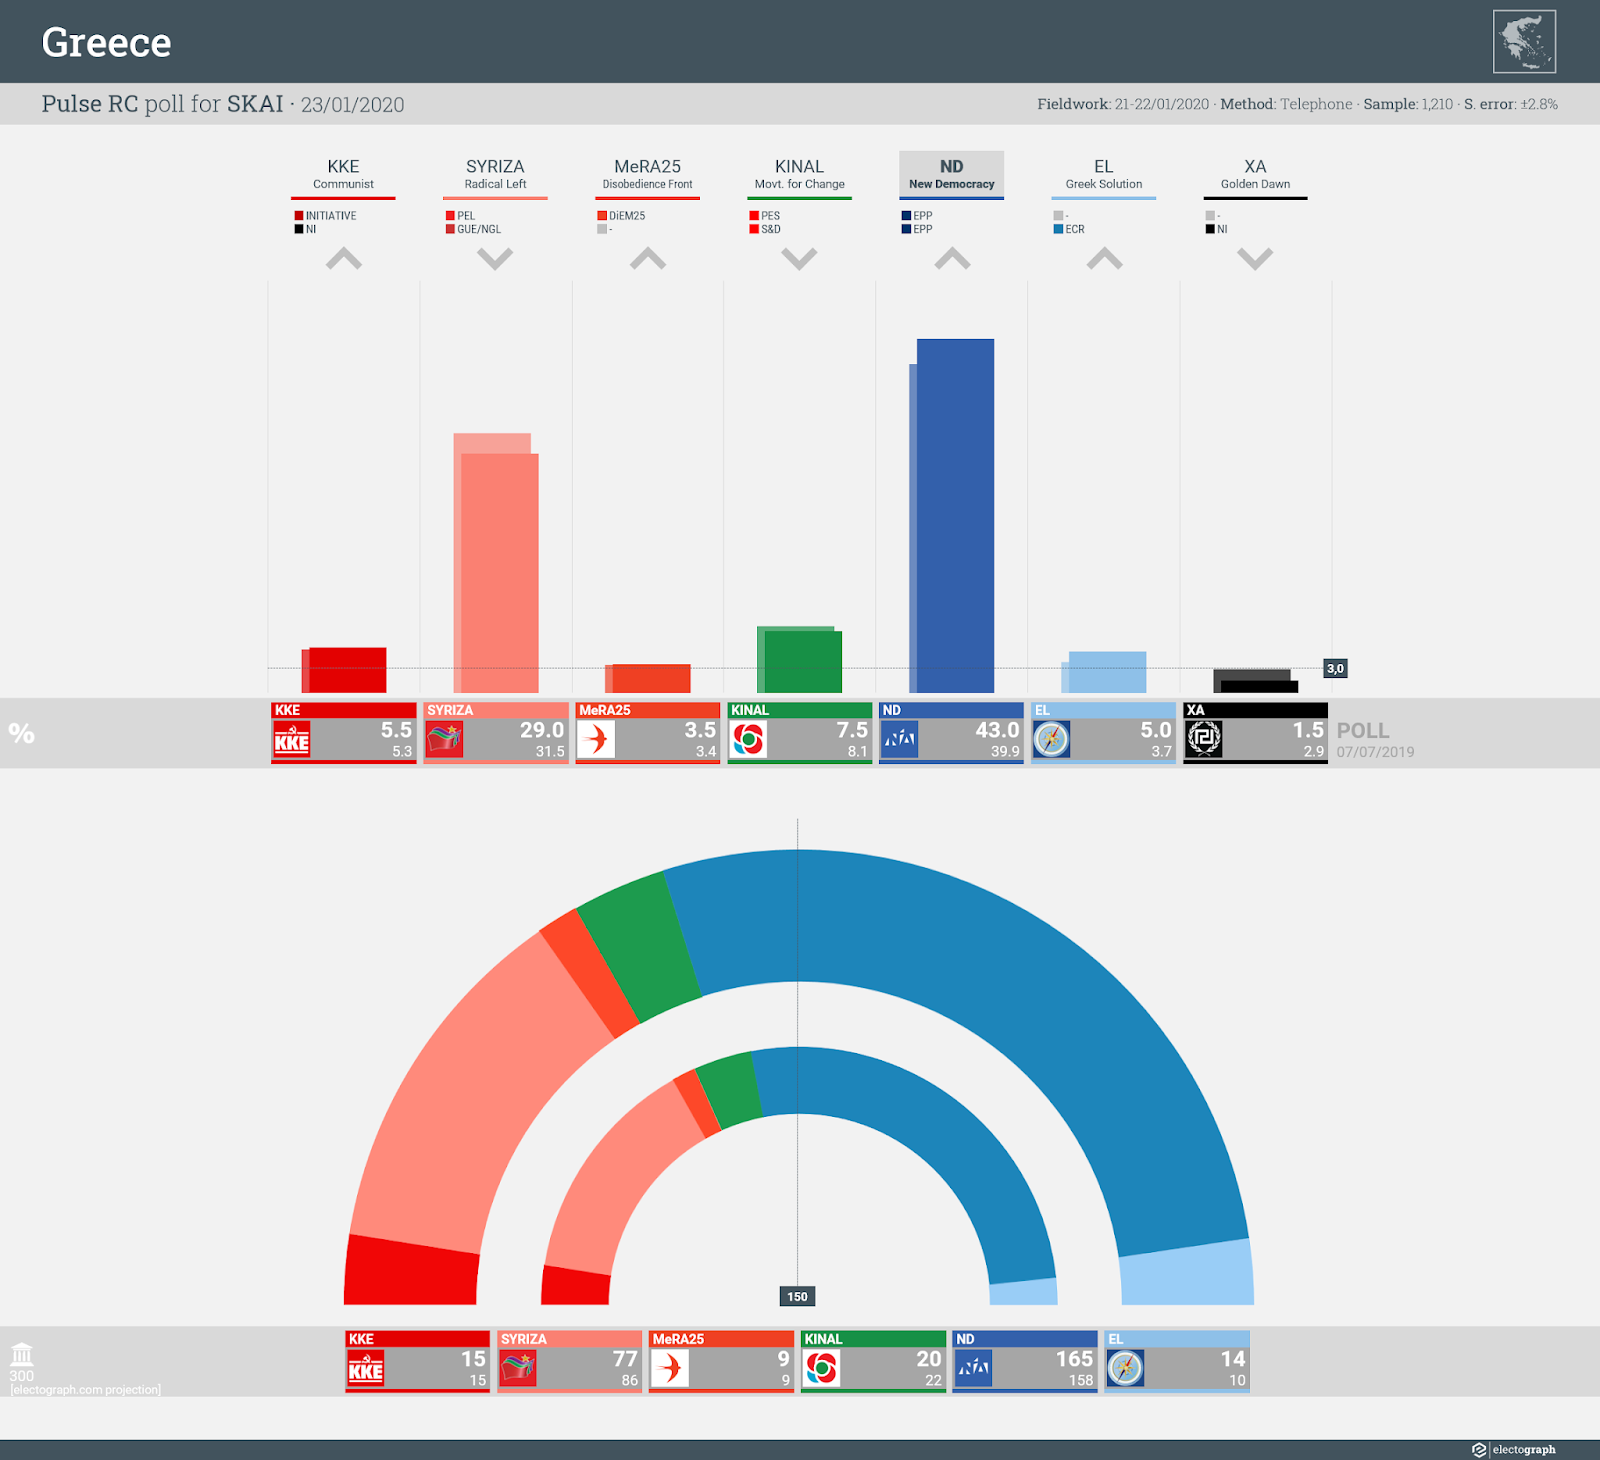 GREECE: Pulse RC poll chart for SKAI, 23 January 2020